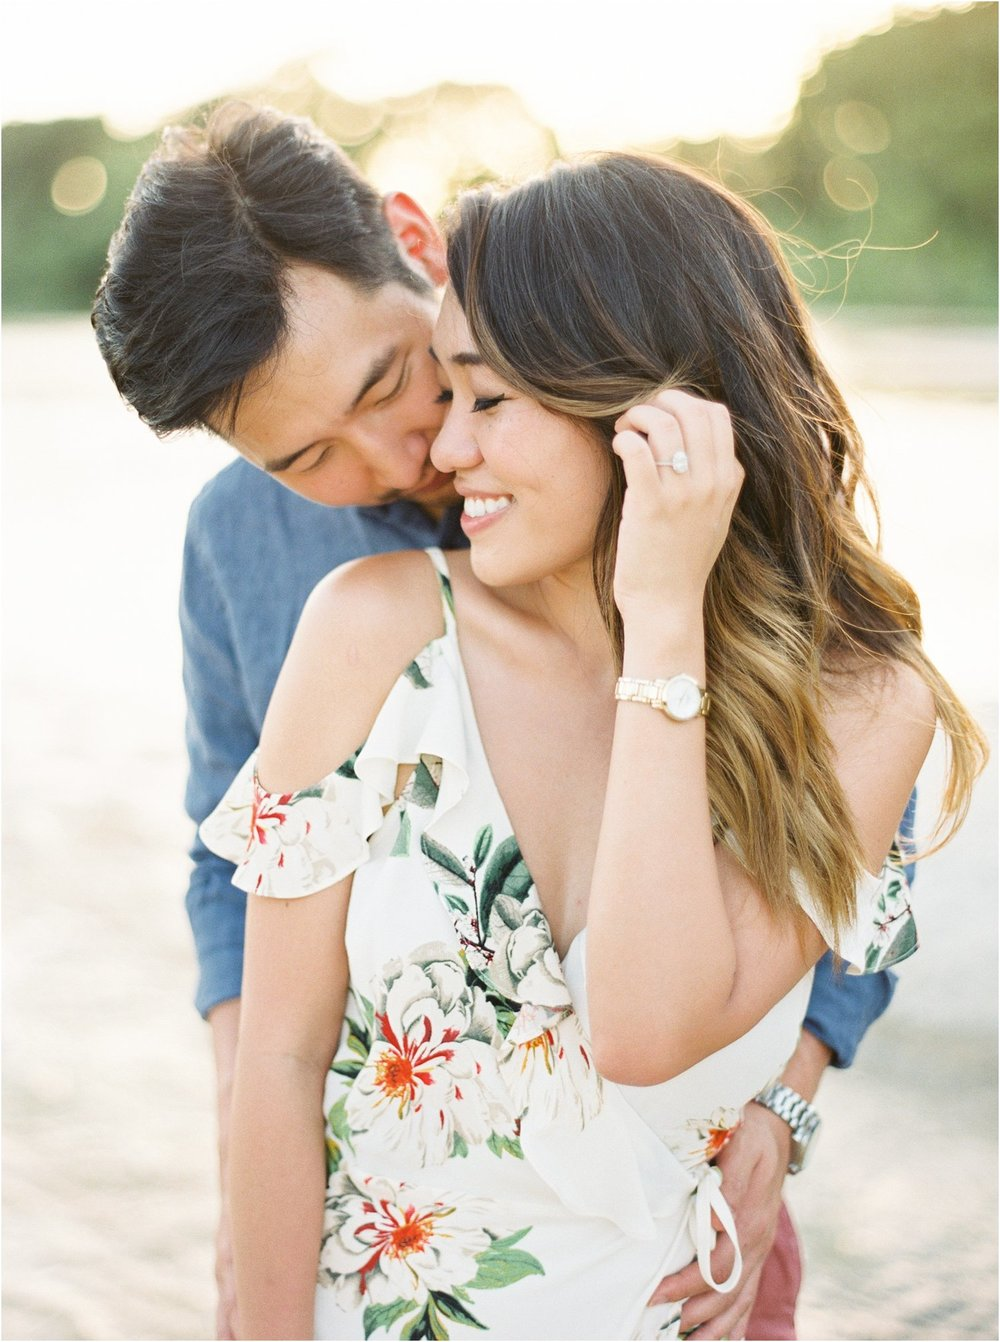 Emily + Philip | Engagement Session | Jessica Scott Photography